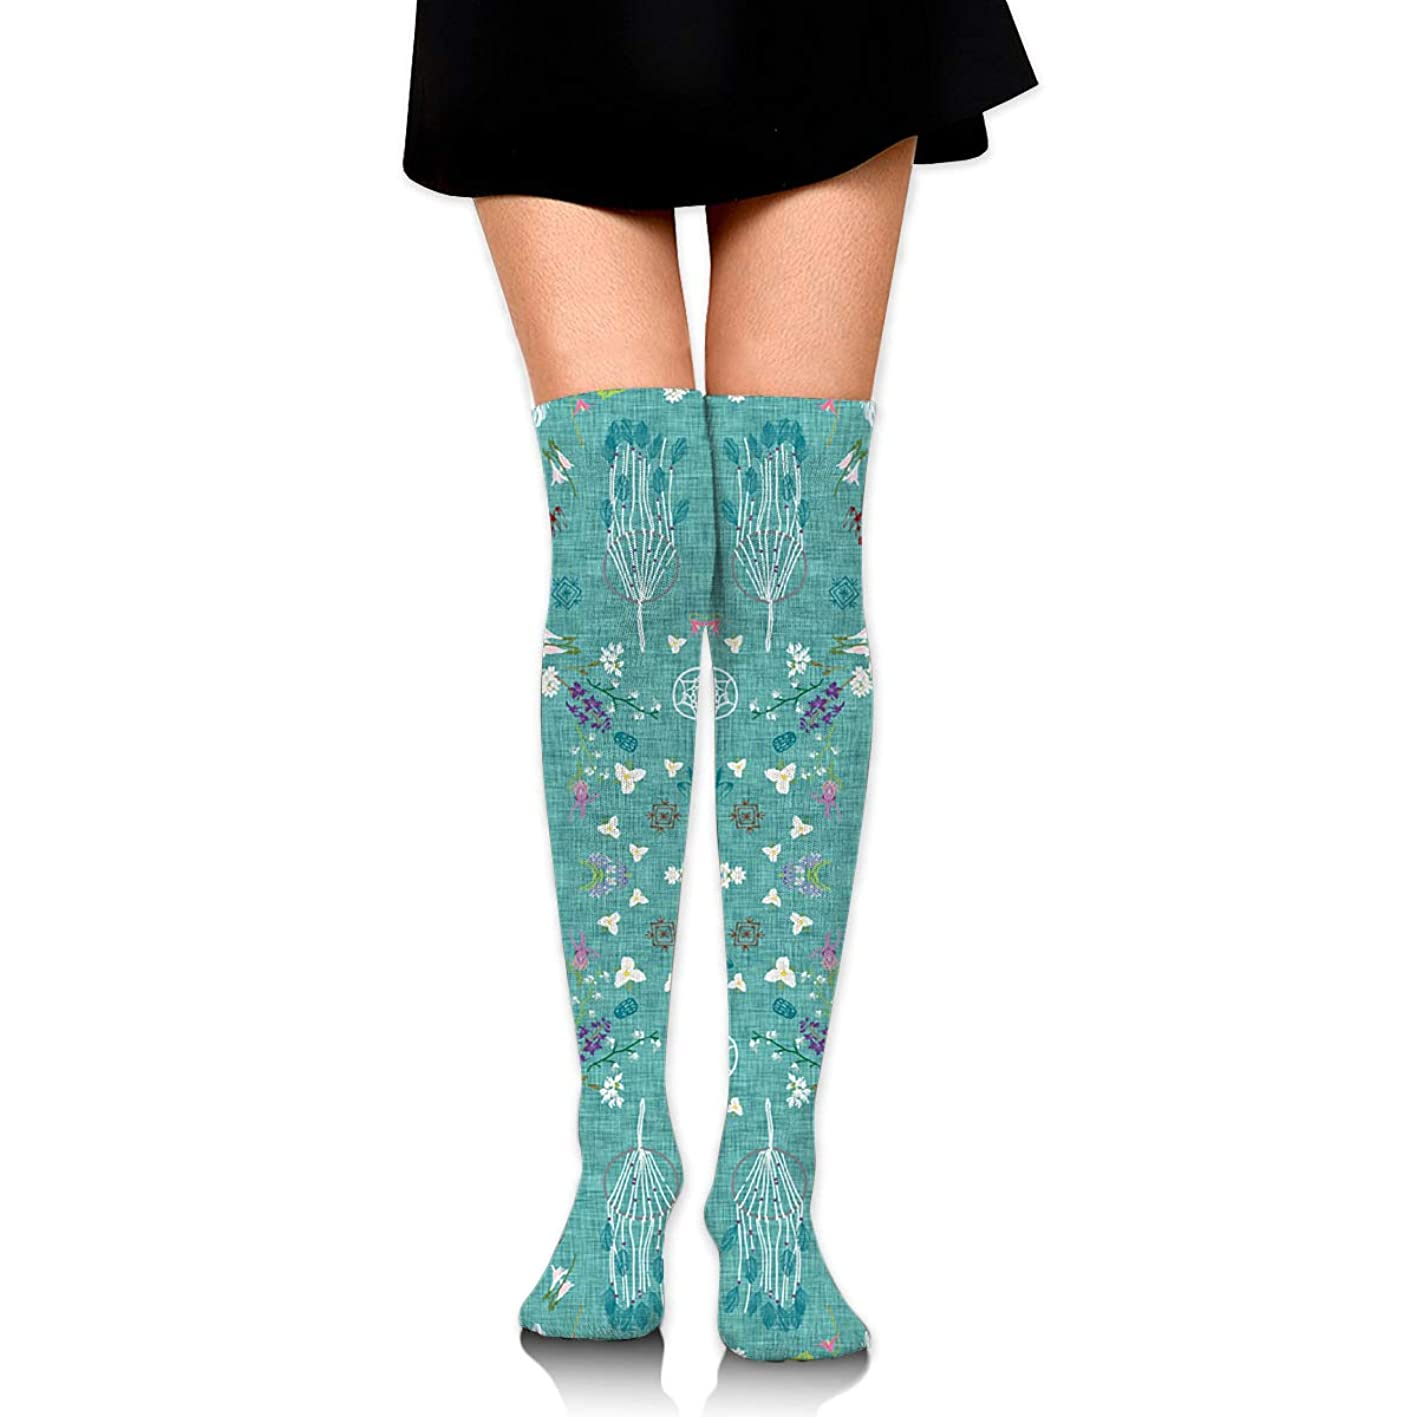 XiuGengg Wildflower Dreams (Teal Linen) Compression Socks Thigh High Socks Over The Knee Socks for Men Women Supports Athletic Running Cycling Football Travel Medical Nursing ubebhresspu321